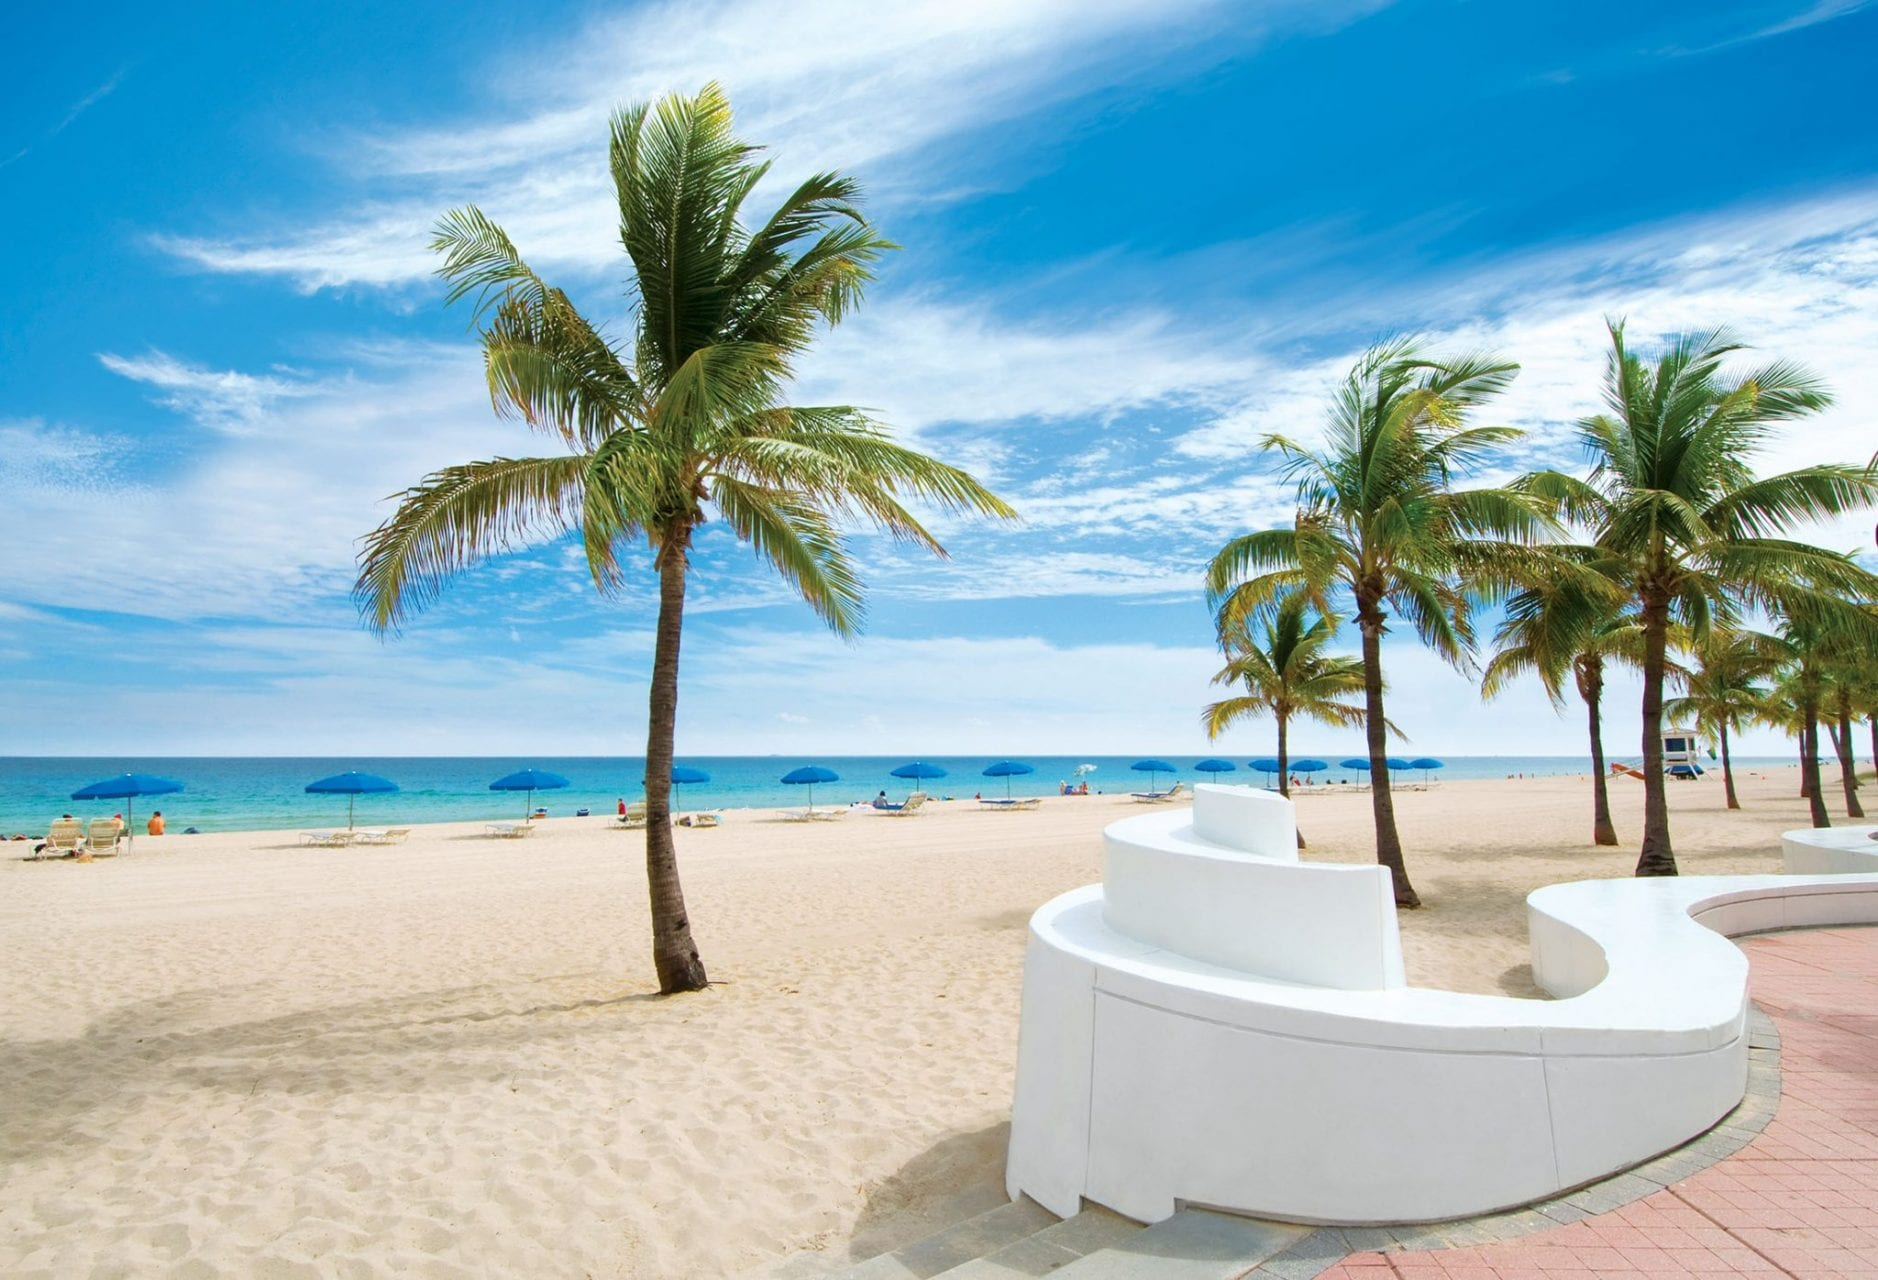 Fort Lauderdale Hotel beachfront